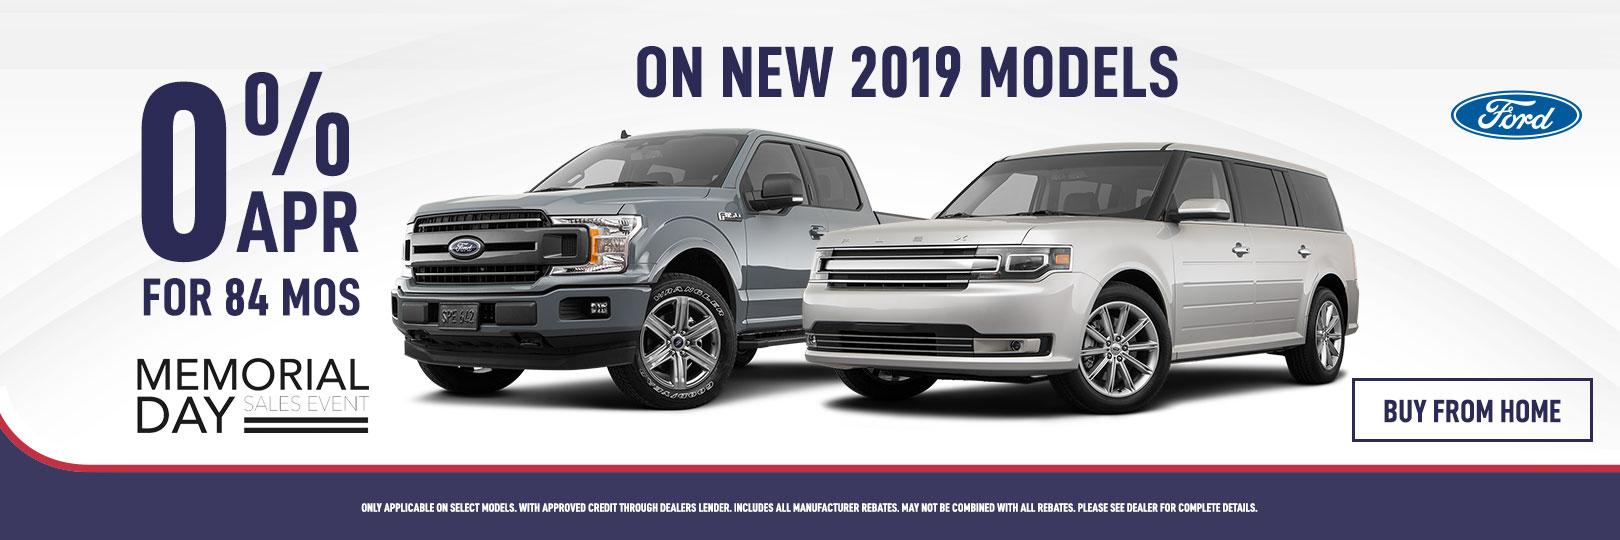 Ford Crestview May 2020 2019 Models 1620x540